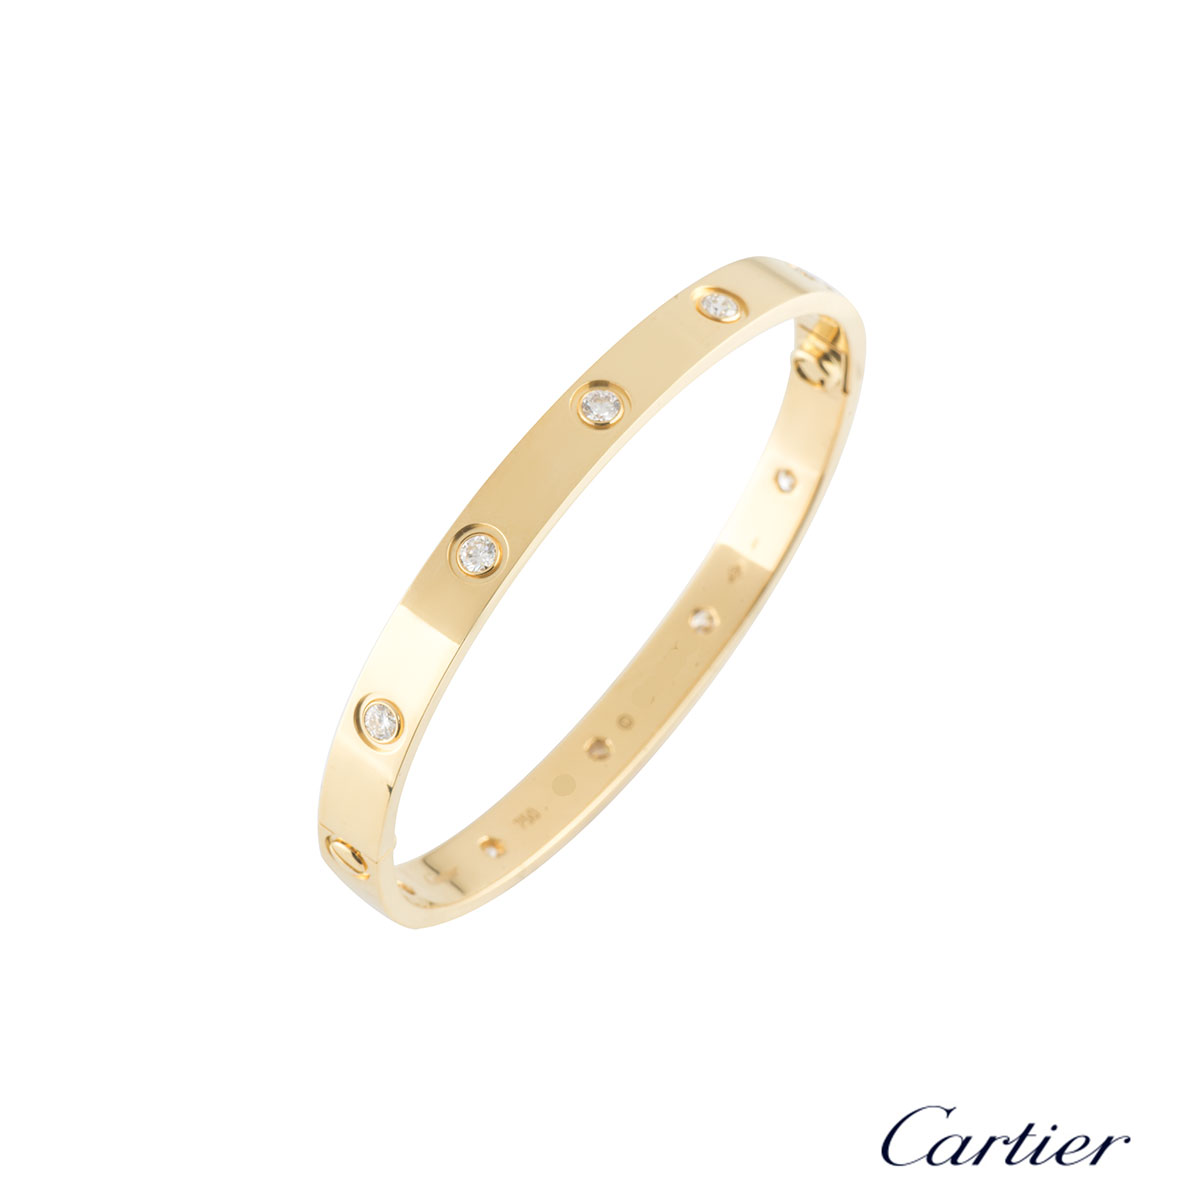 Cartier Yellow Gold Full Diamond Love Bracelet Size 16 B6041516